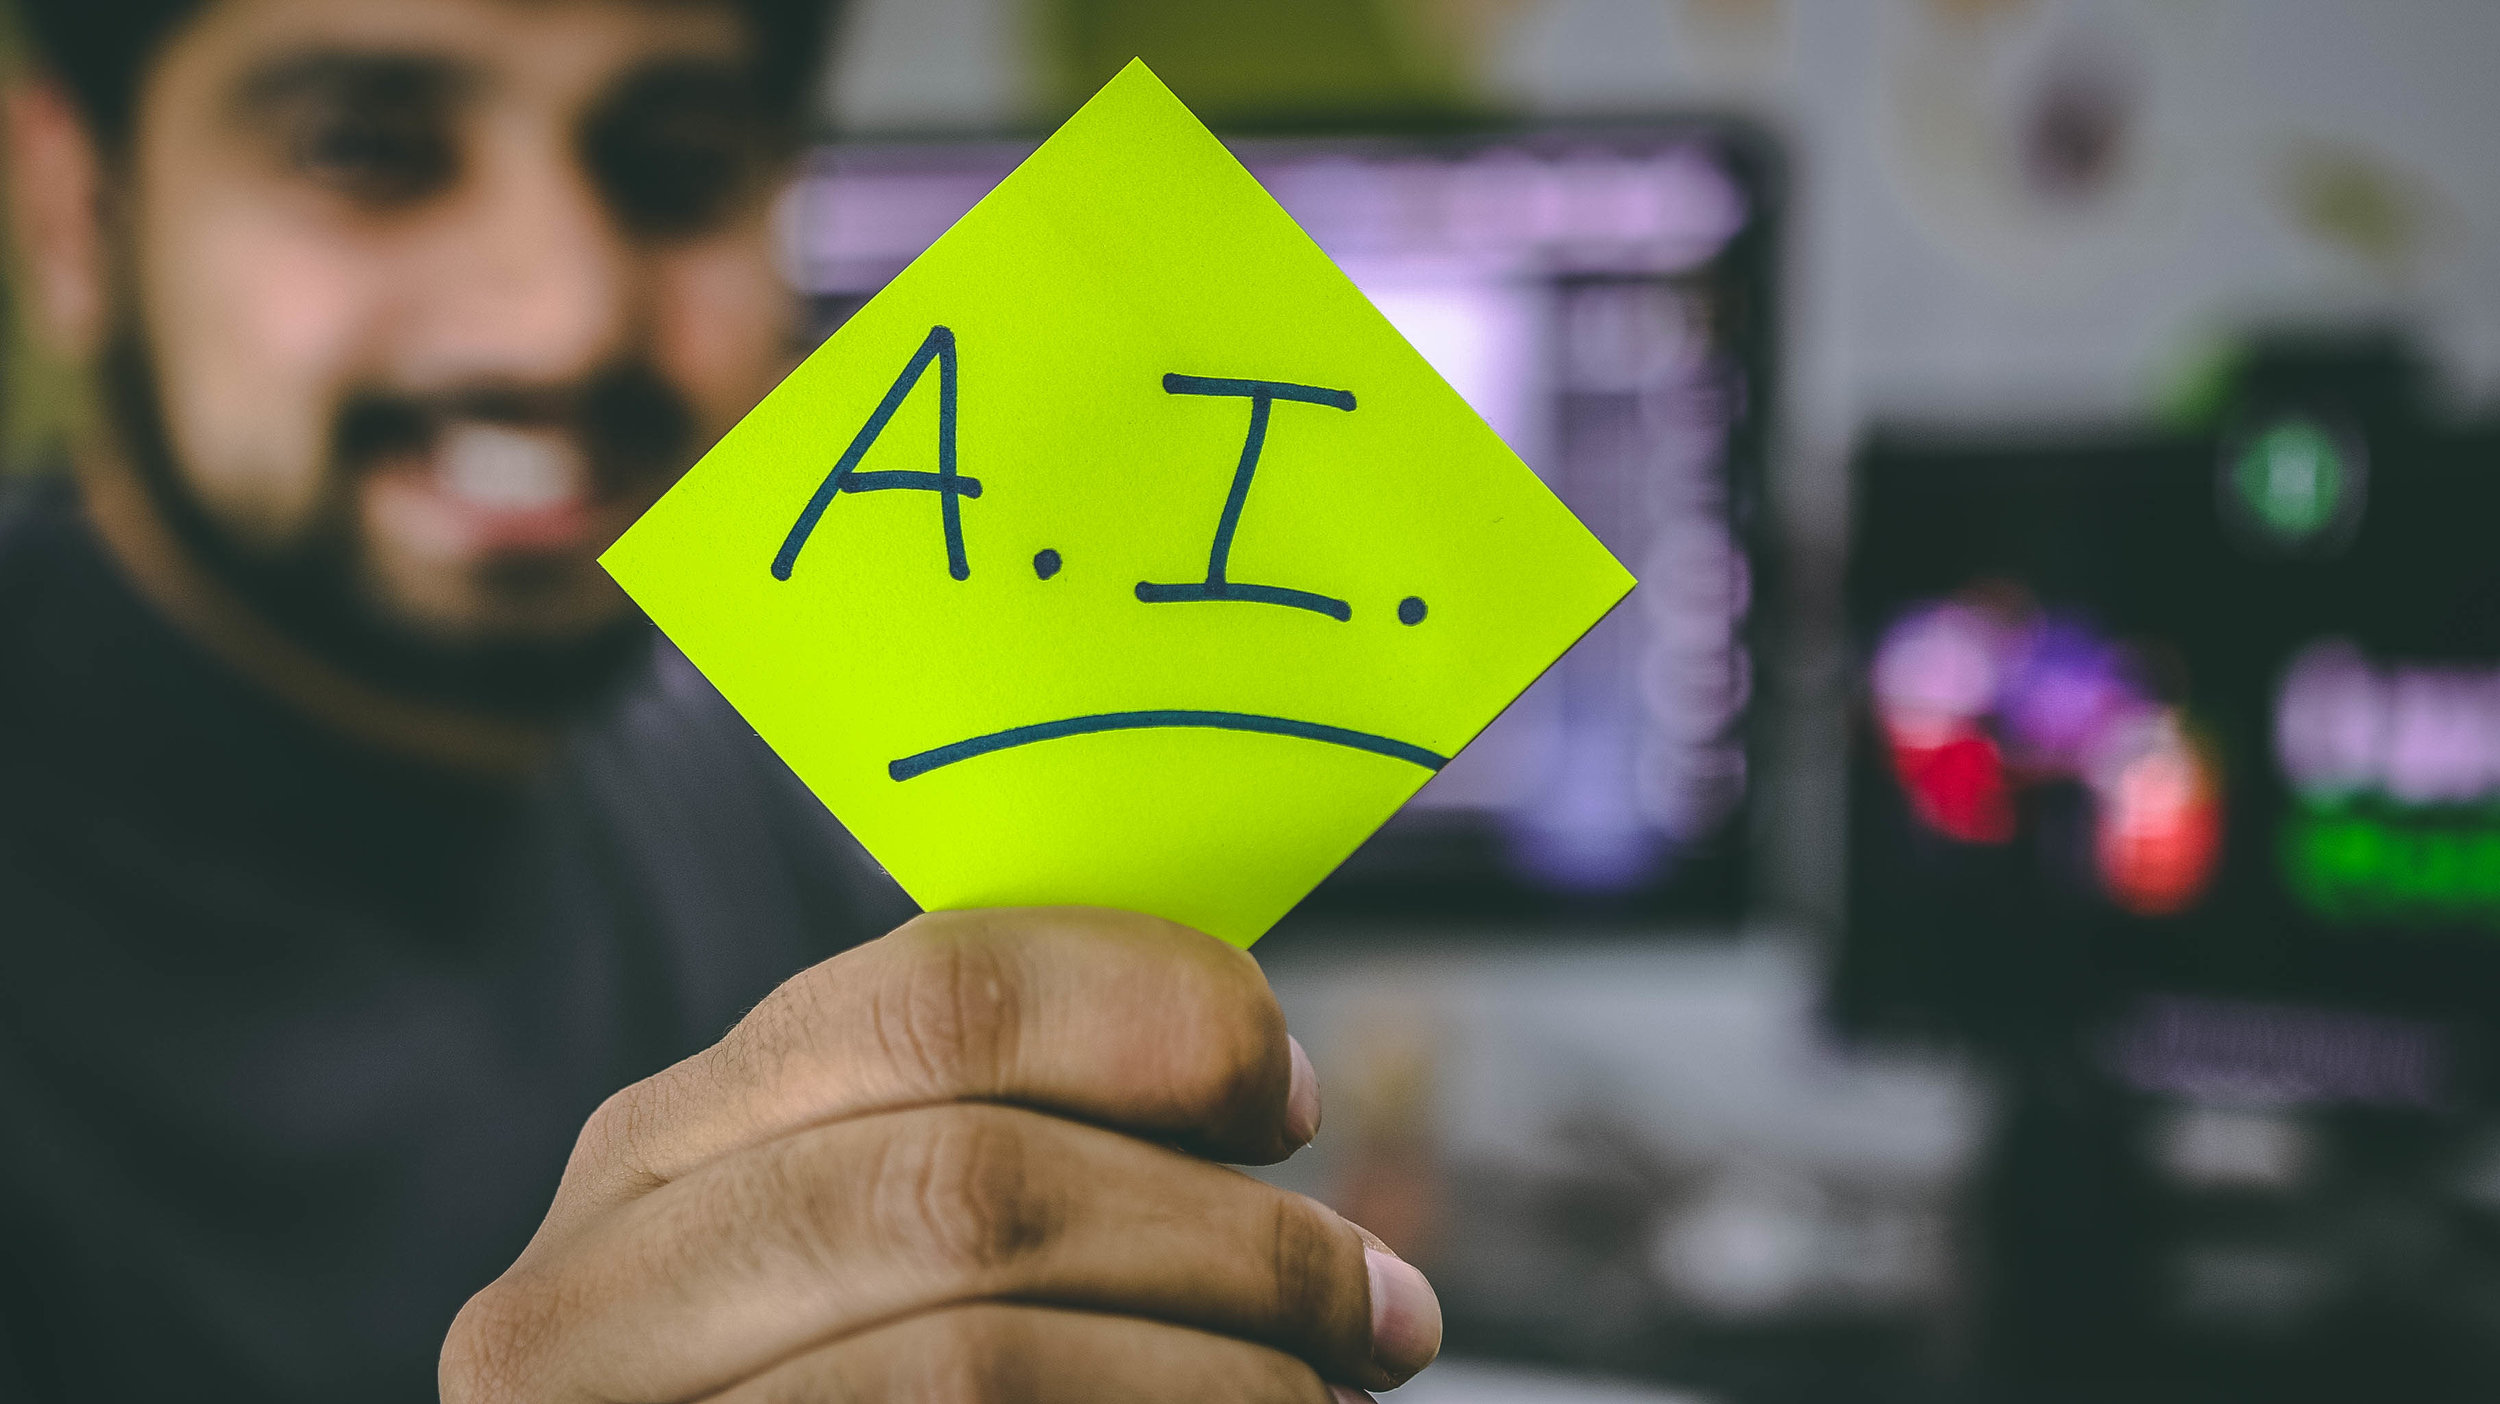 If You're Doing Digital Without AI, You're Doing It Wrong